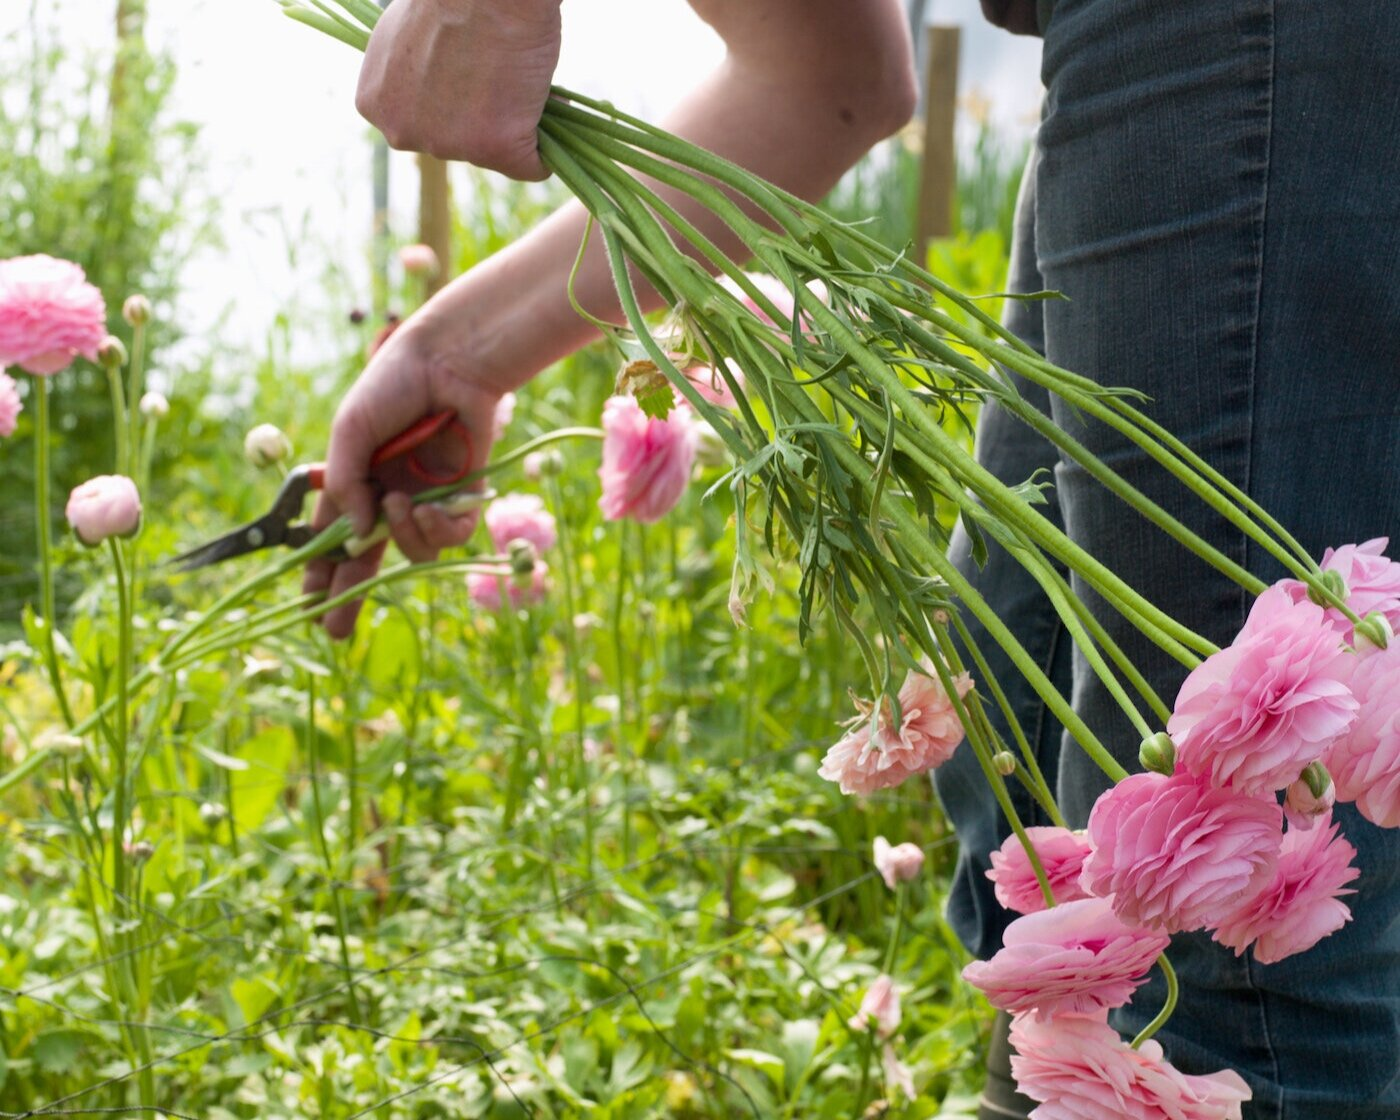 How many Ranunculus stems per plant? I've seen estimates from 3 to 20.